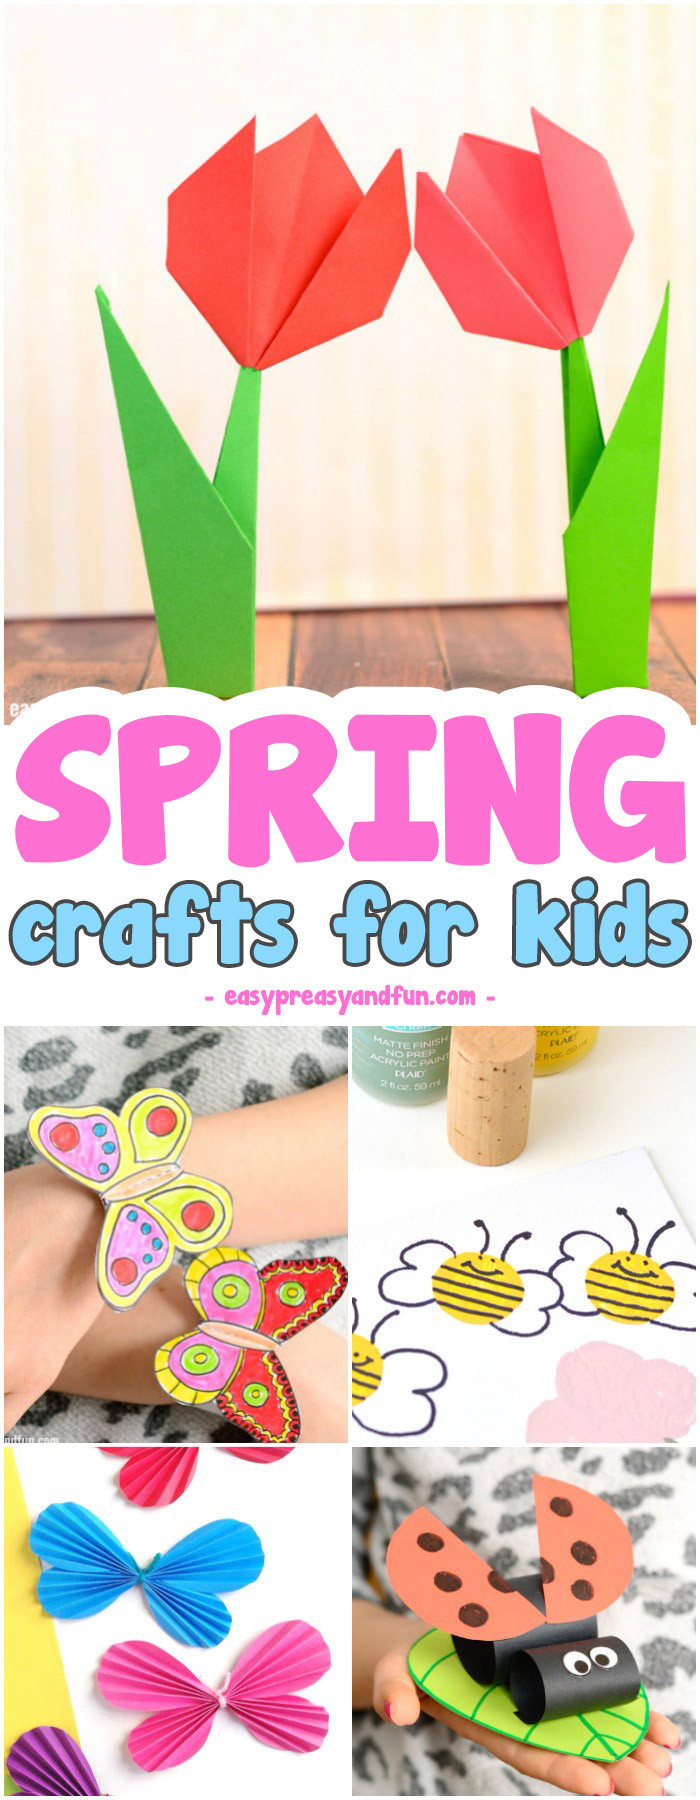 Toddler Arts And Craft Ideas  Spring Crafts for Kids Art and Craft Project Ideas for